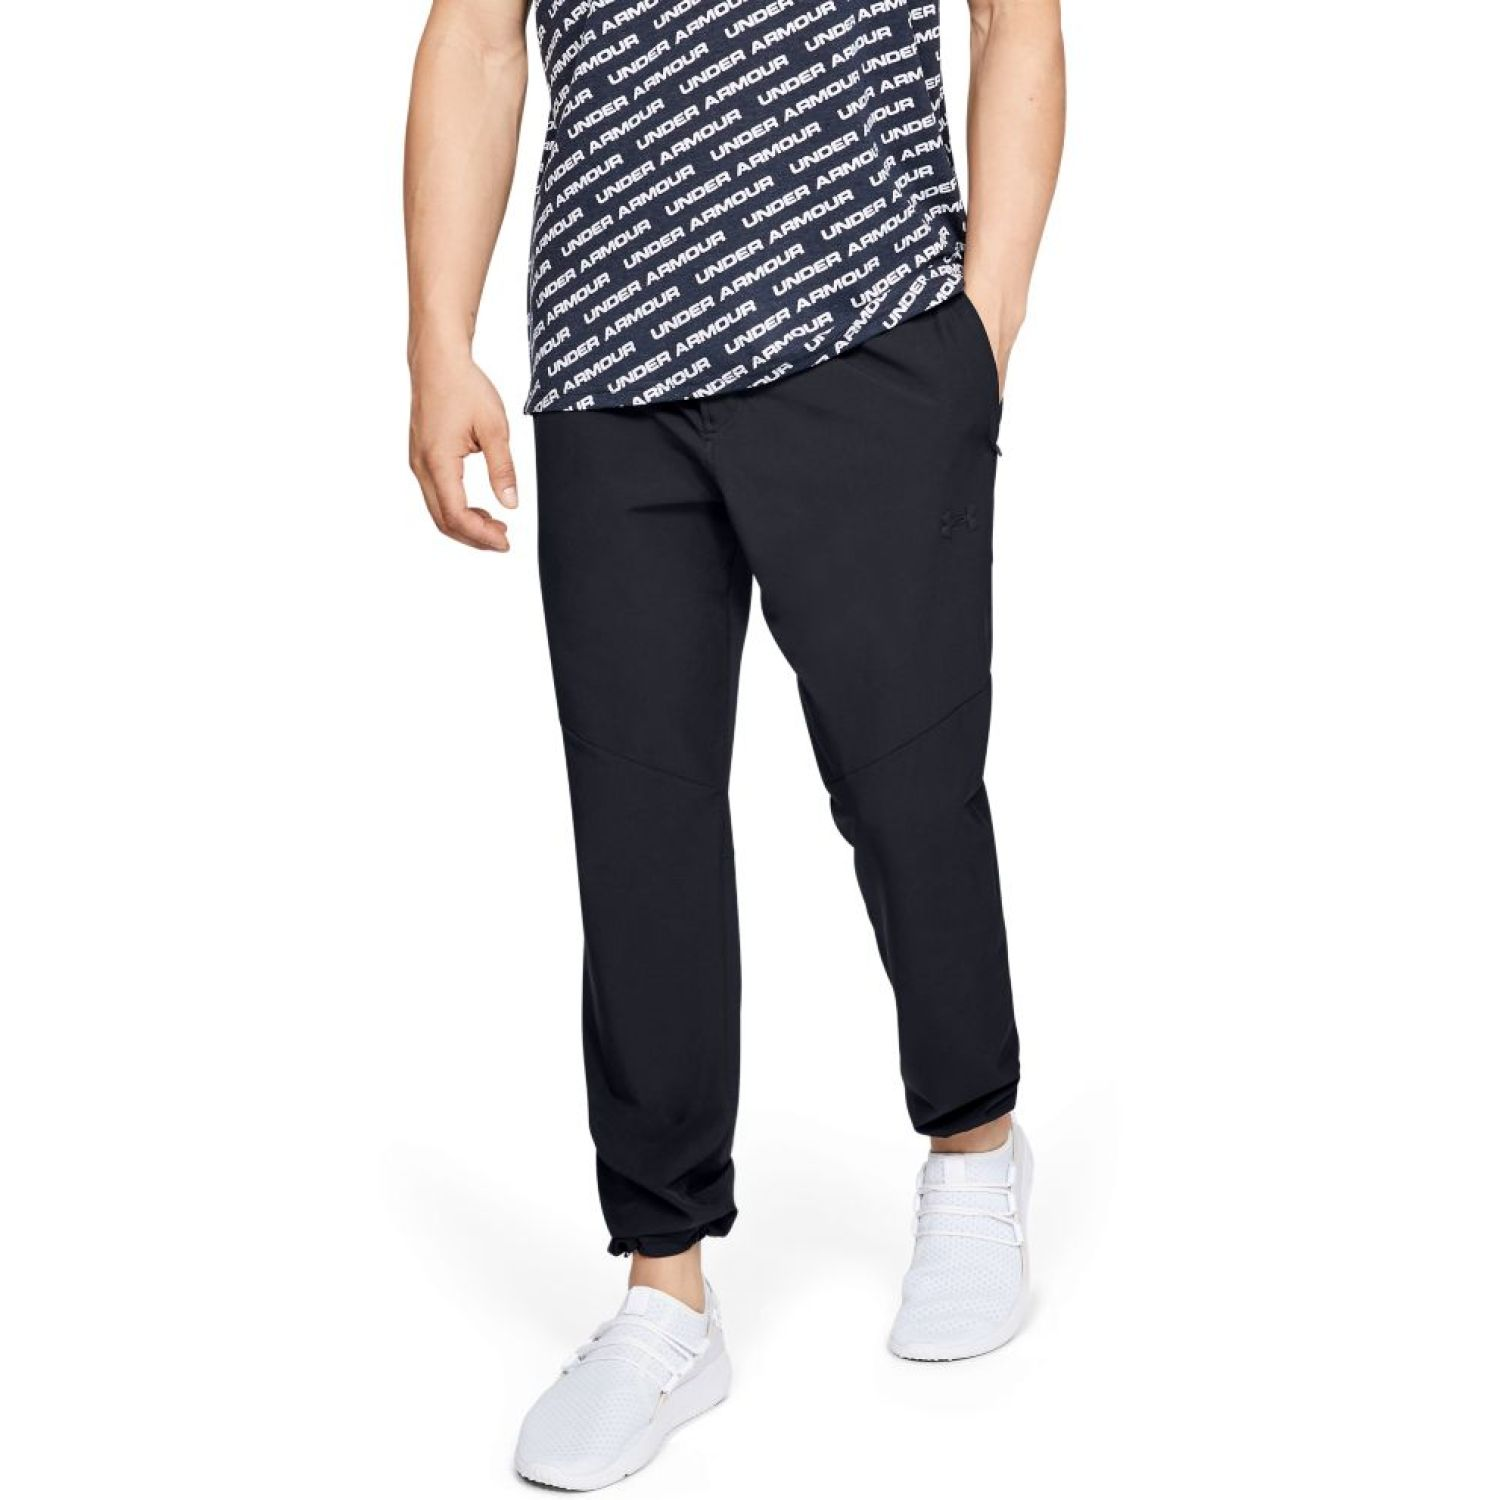 Under Armour Unstoppable Woven Pant Negro Pantalones deportivos